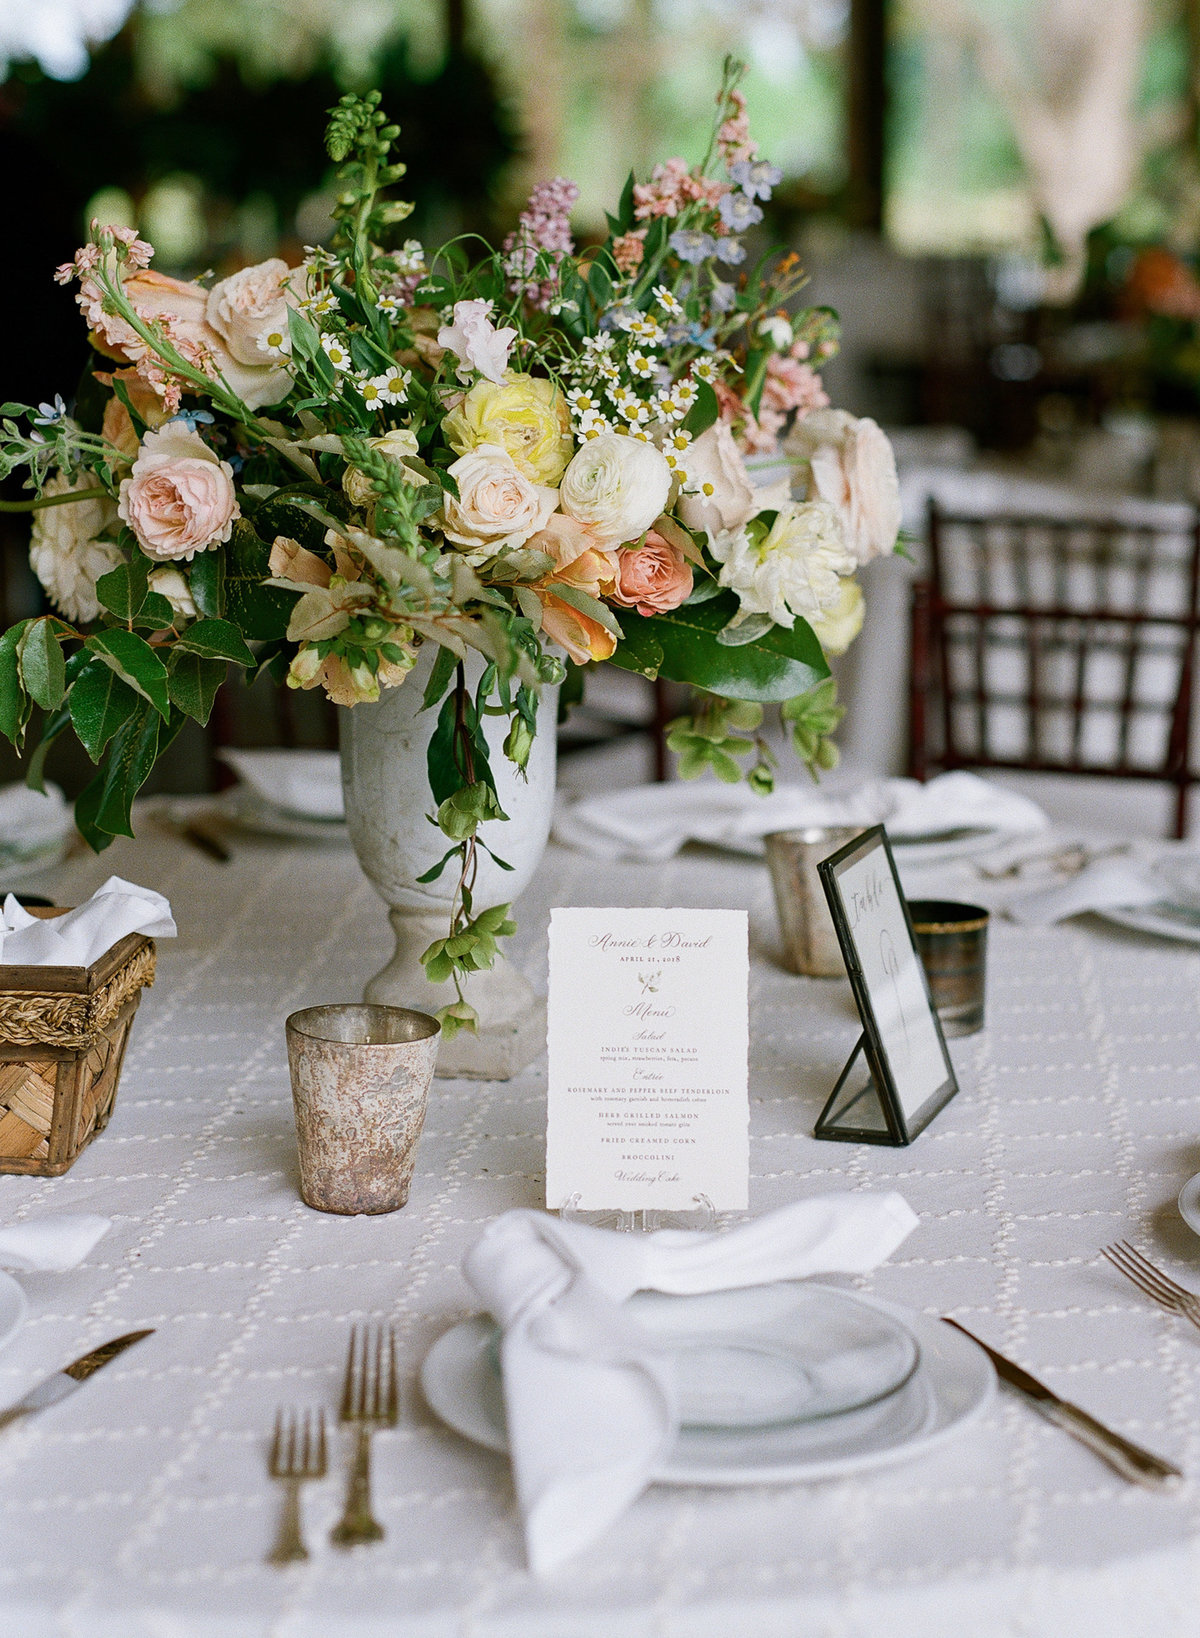 Southern Spring Garden Table Design at Wedding